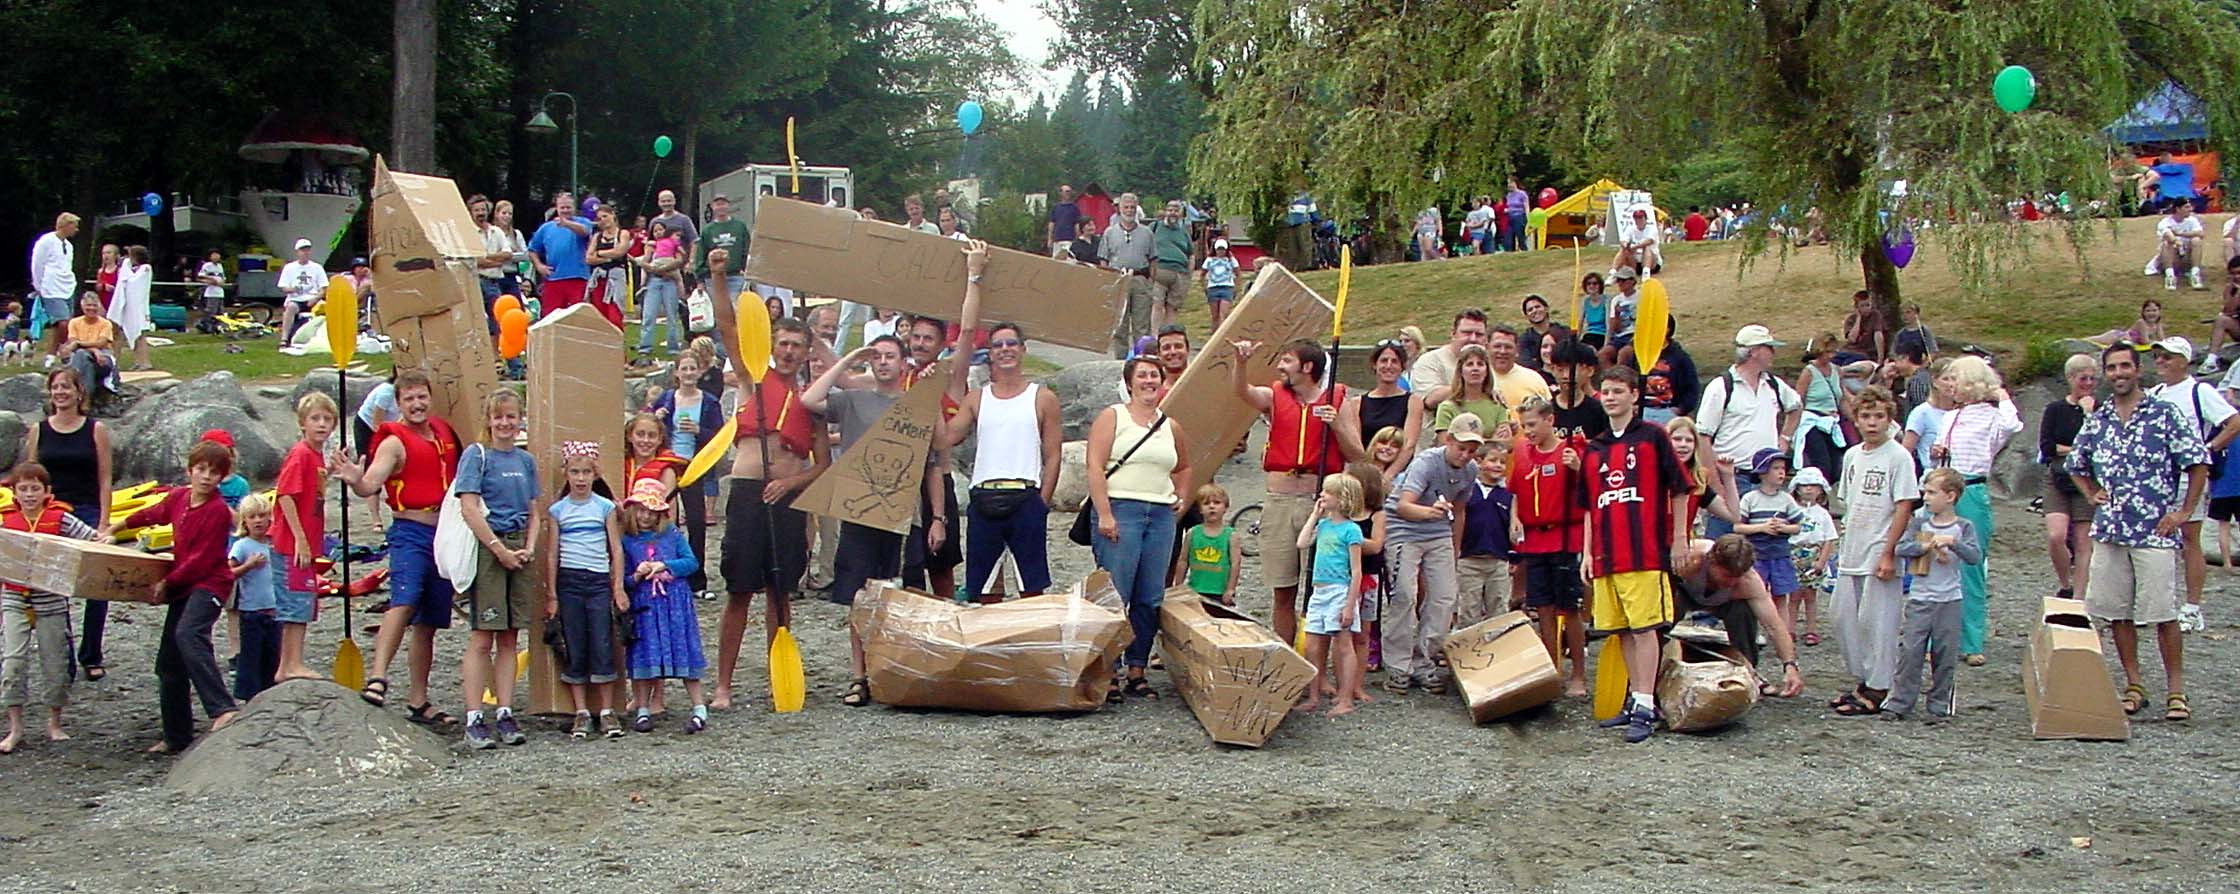 Deep Cove beach at the start of the cardboard kayak race